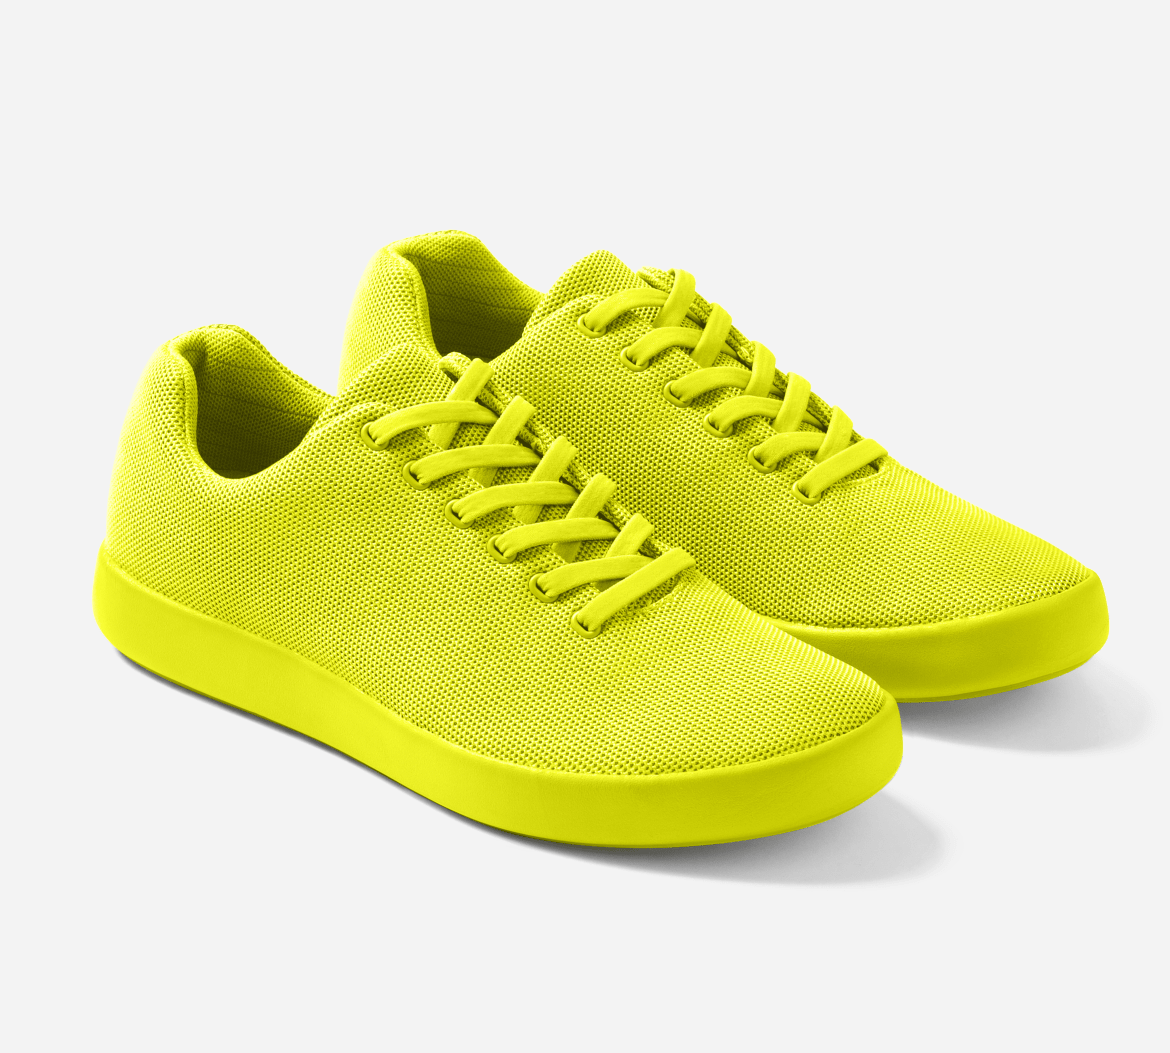 Atoms are the Allbirds beaters of 2020